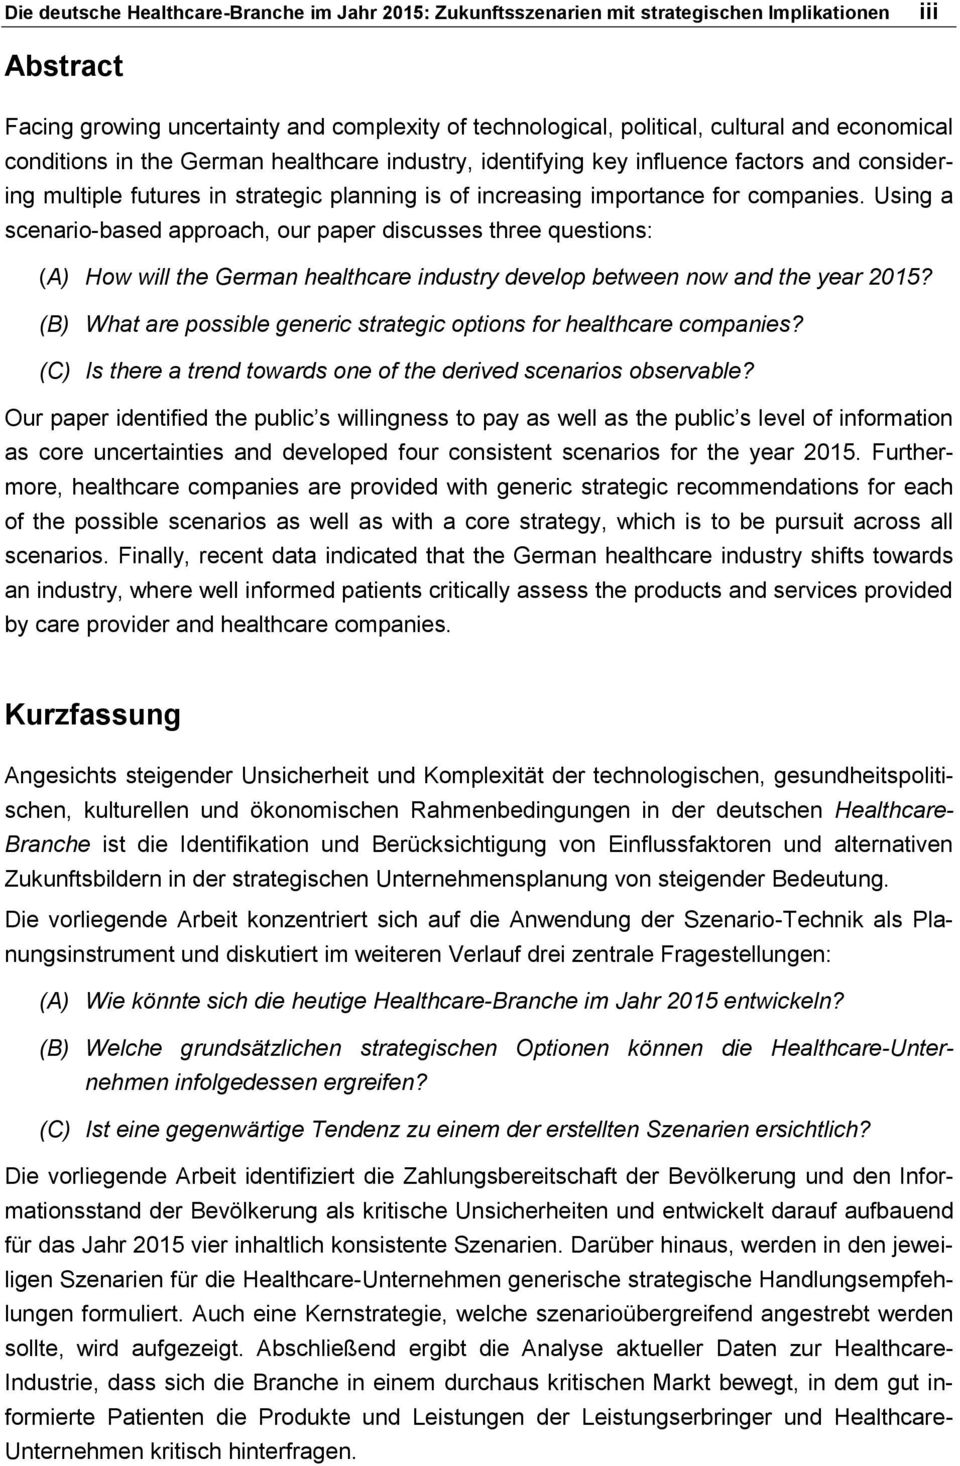 Using a scenario-based approach, our paper discusses three questions: (A) How will the German healthcare industry develop between now and the year 2015?